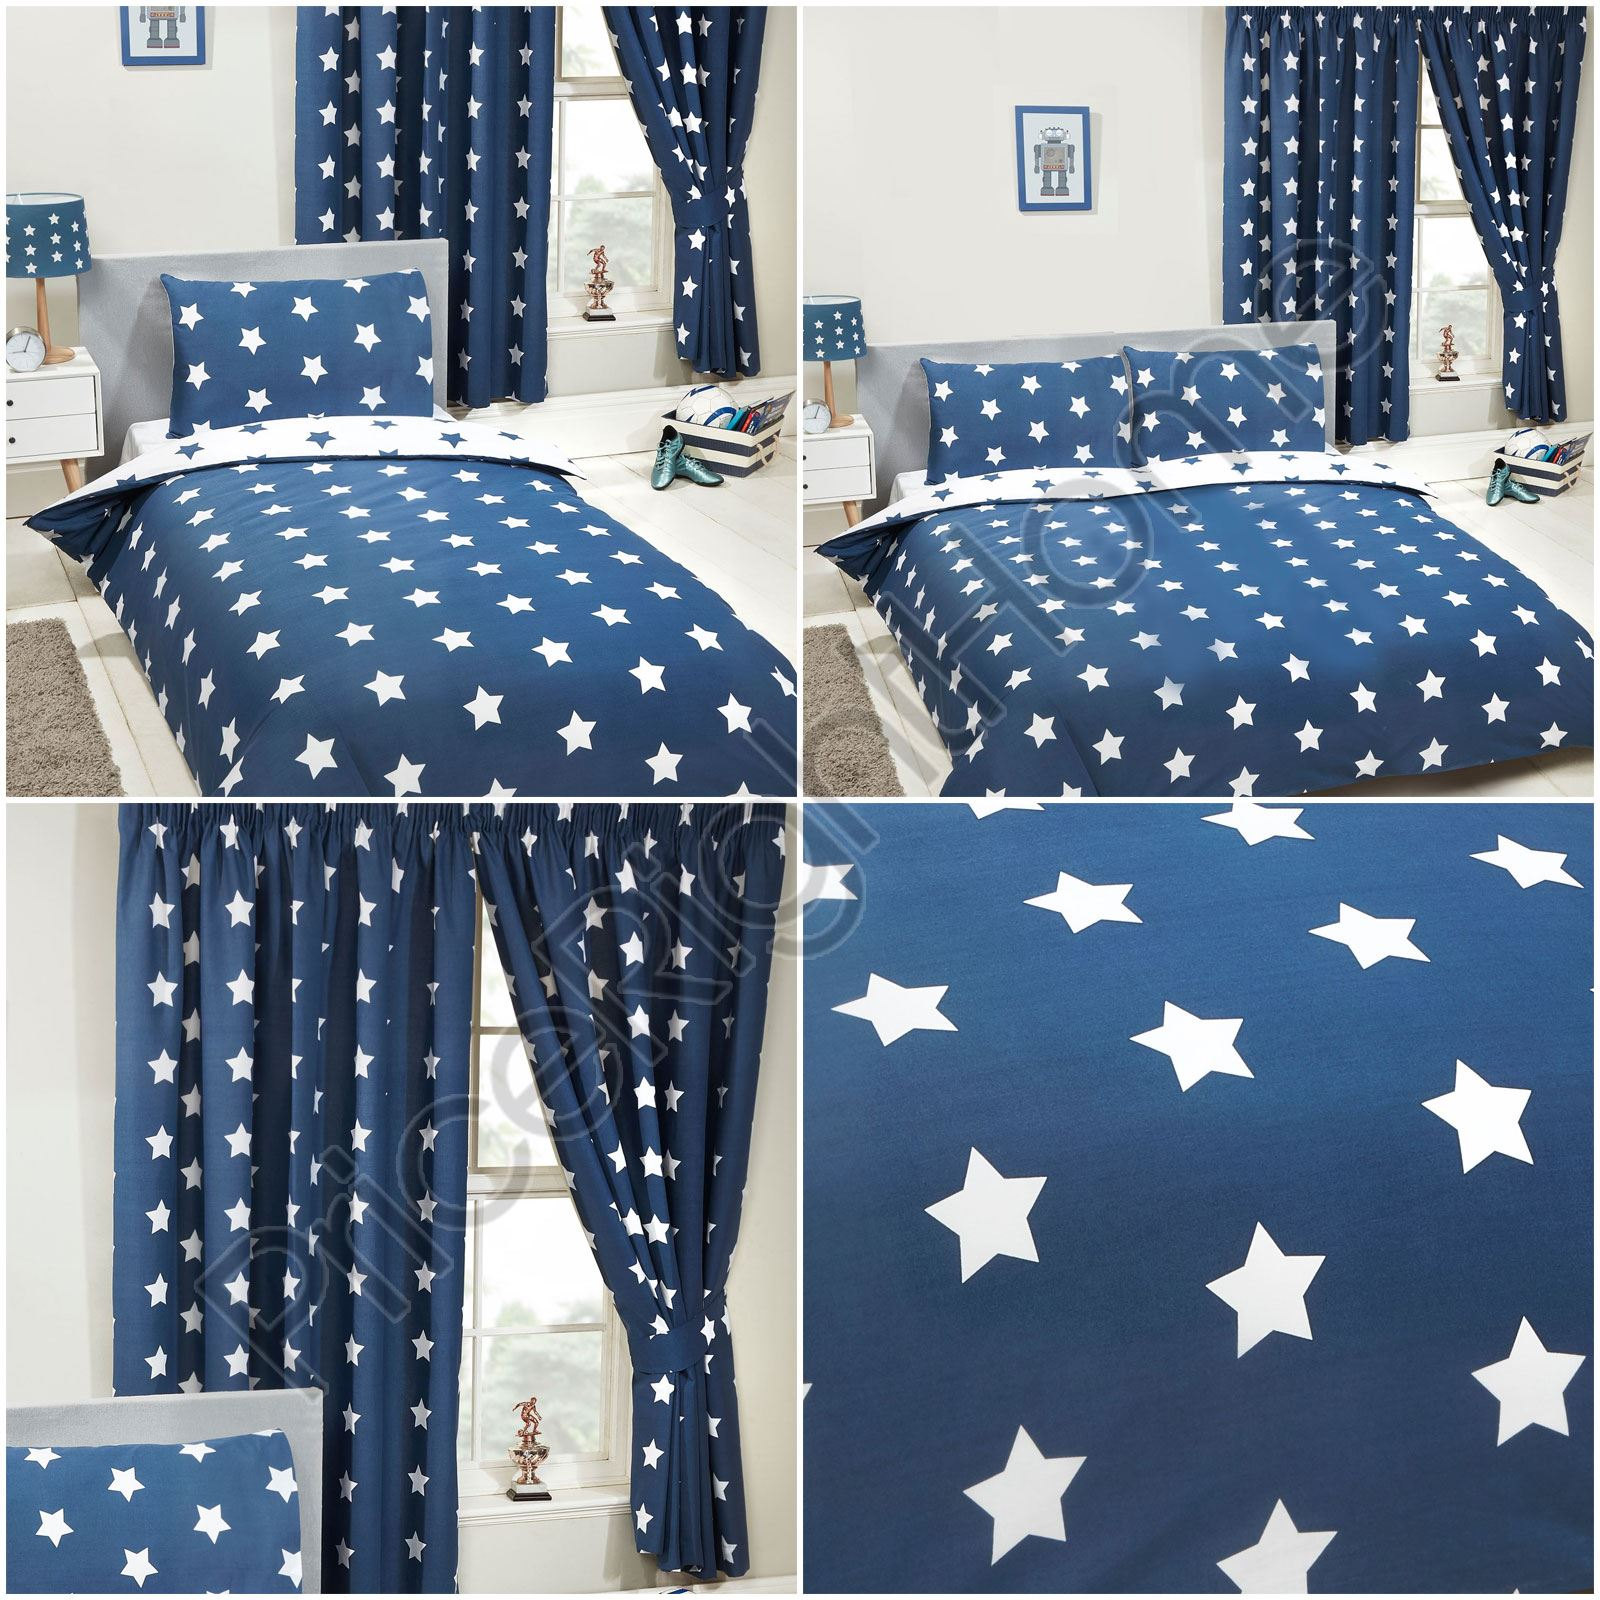 Navy Blue White Stars Curtains Duvet Cover Fitted Sheet